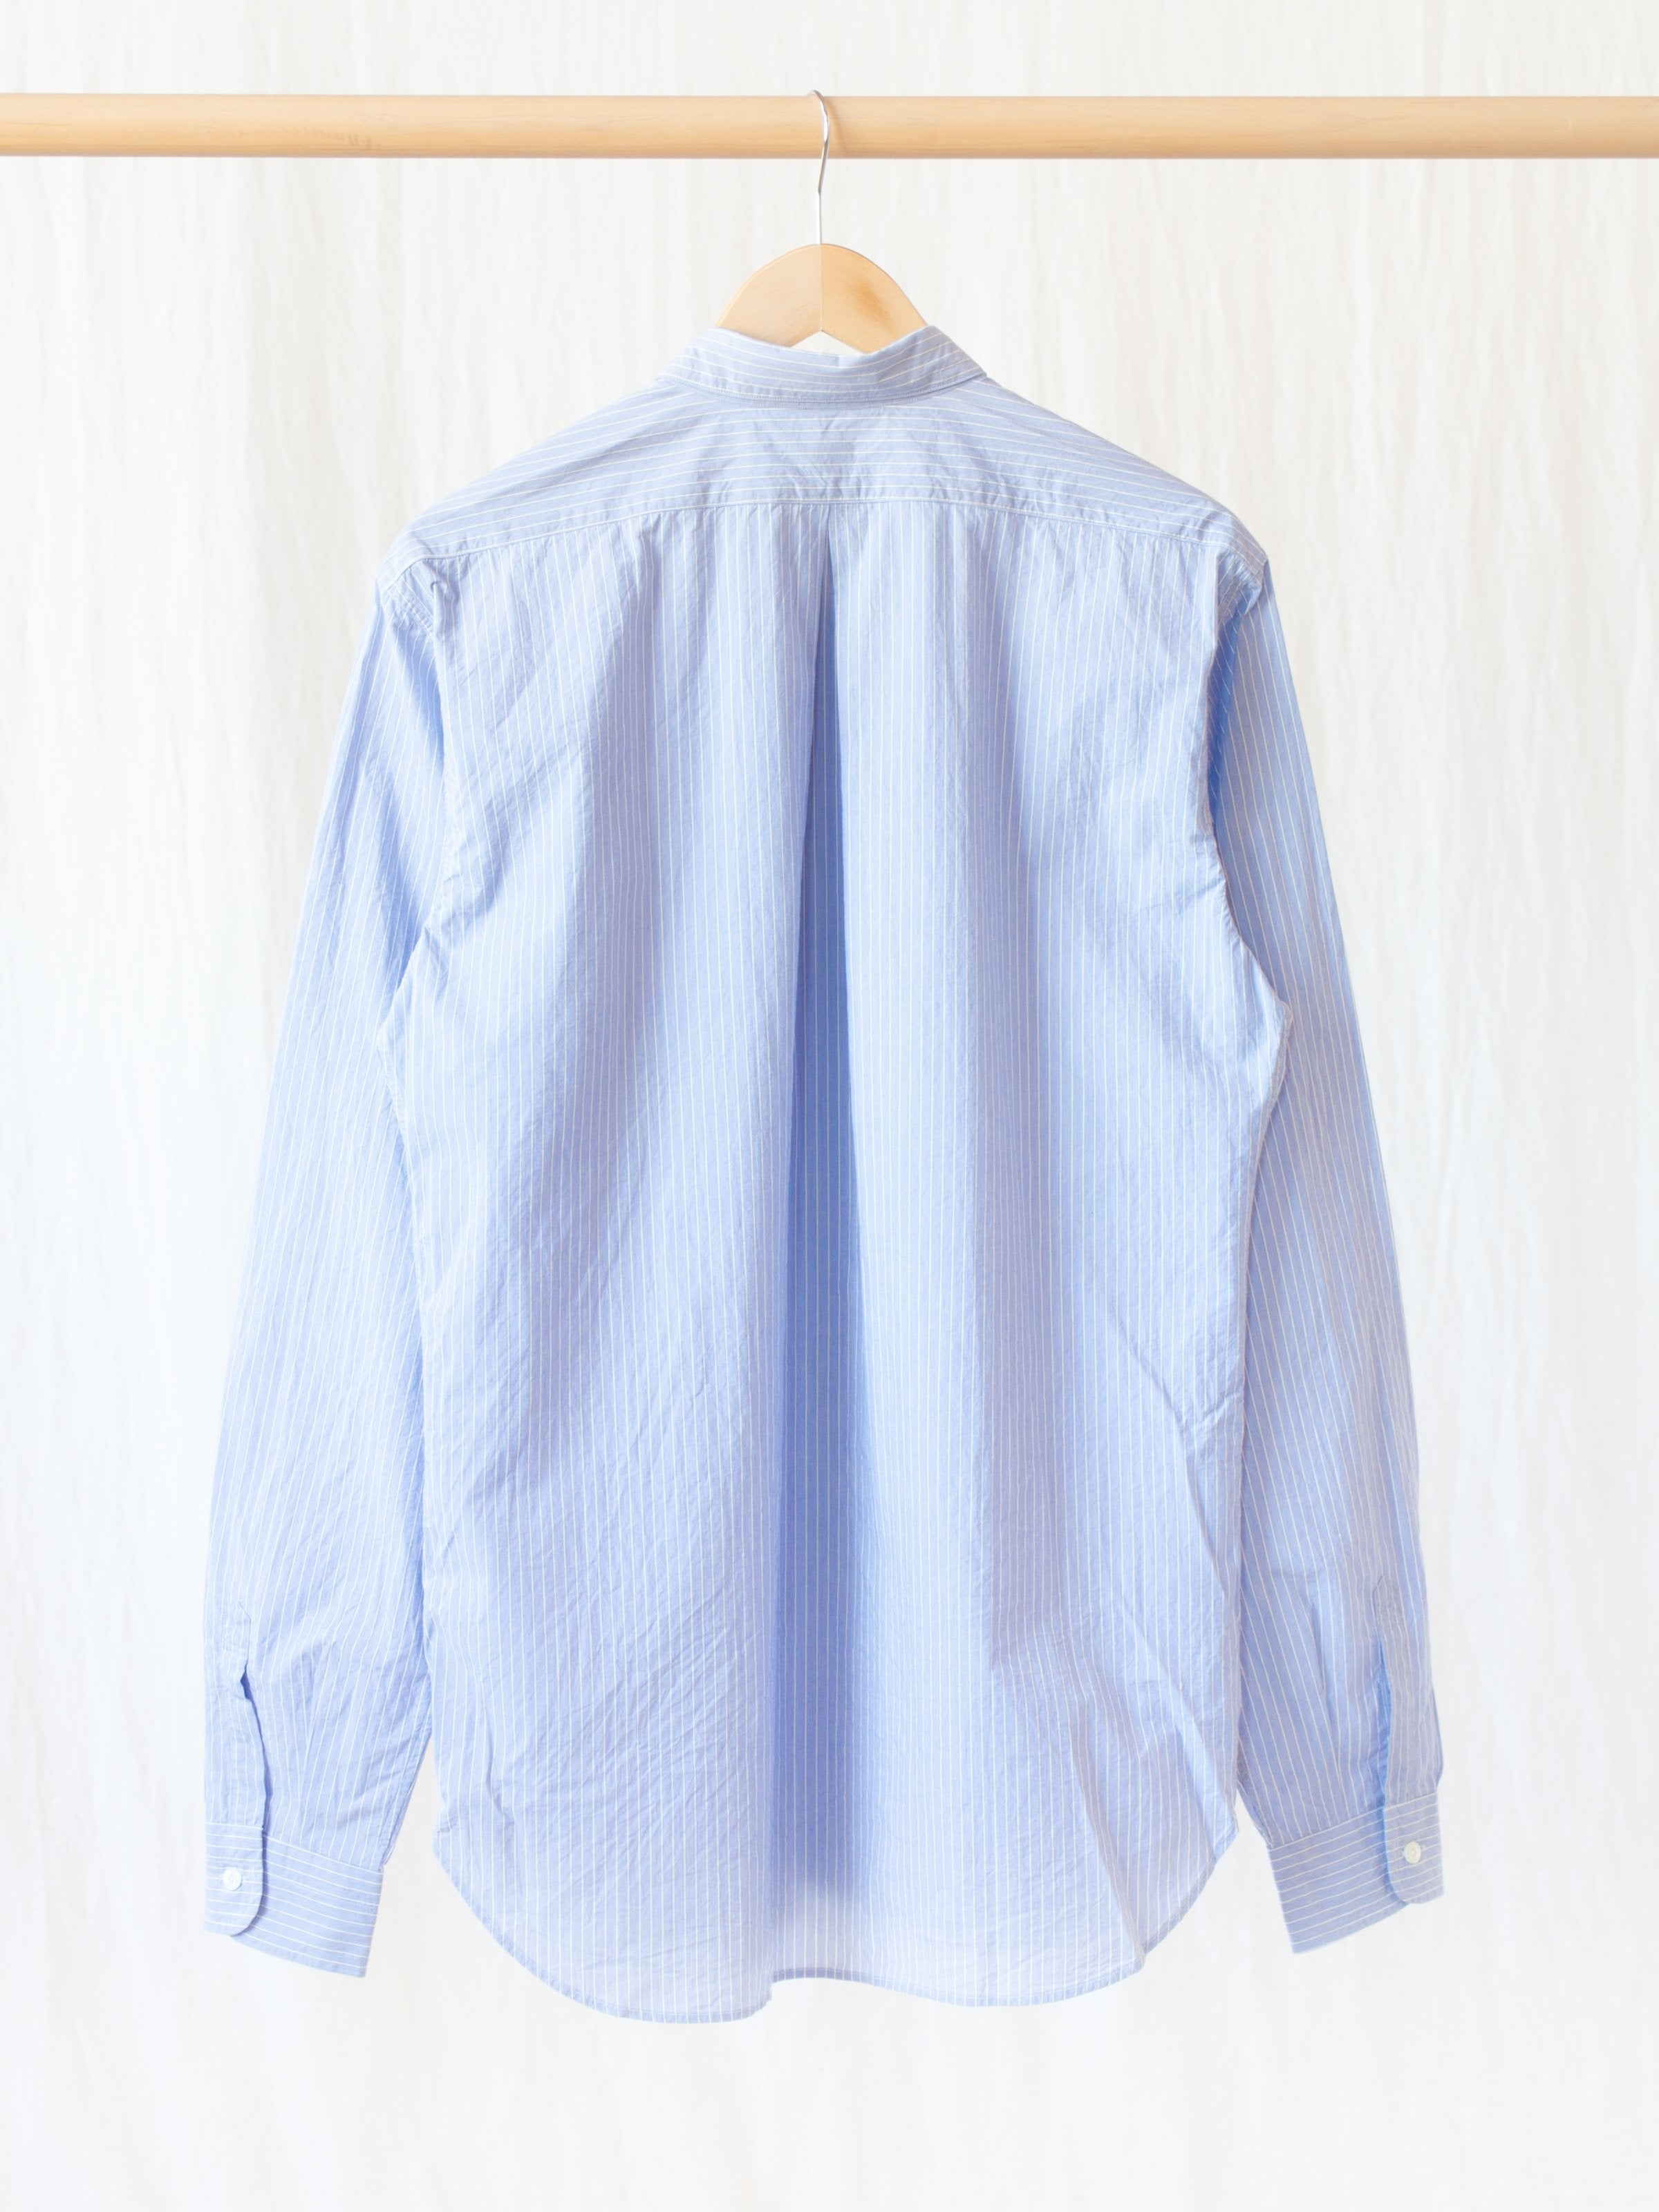 Namu Shop - Fujito Standard Shirt - Blue Stripe